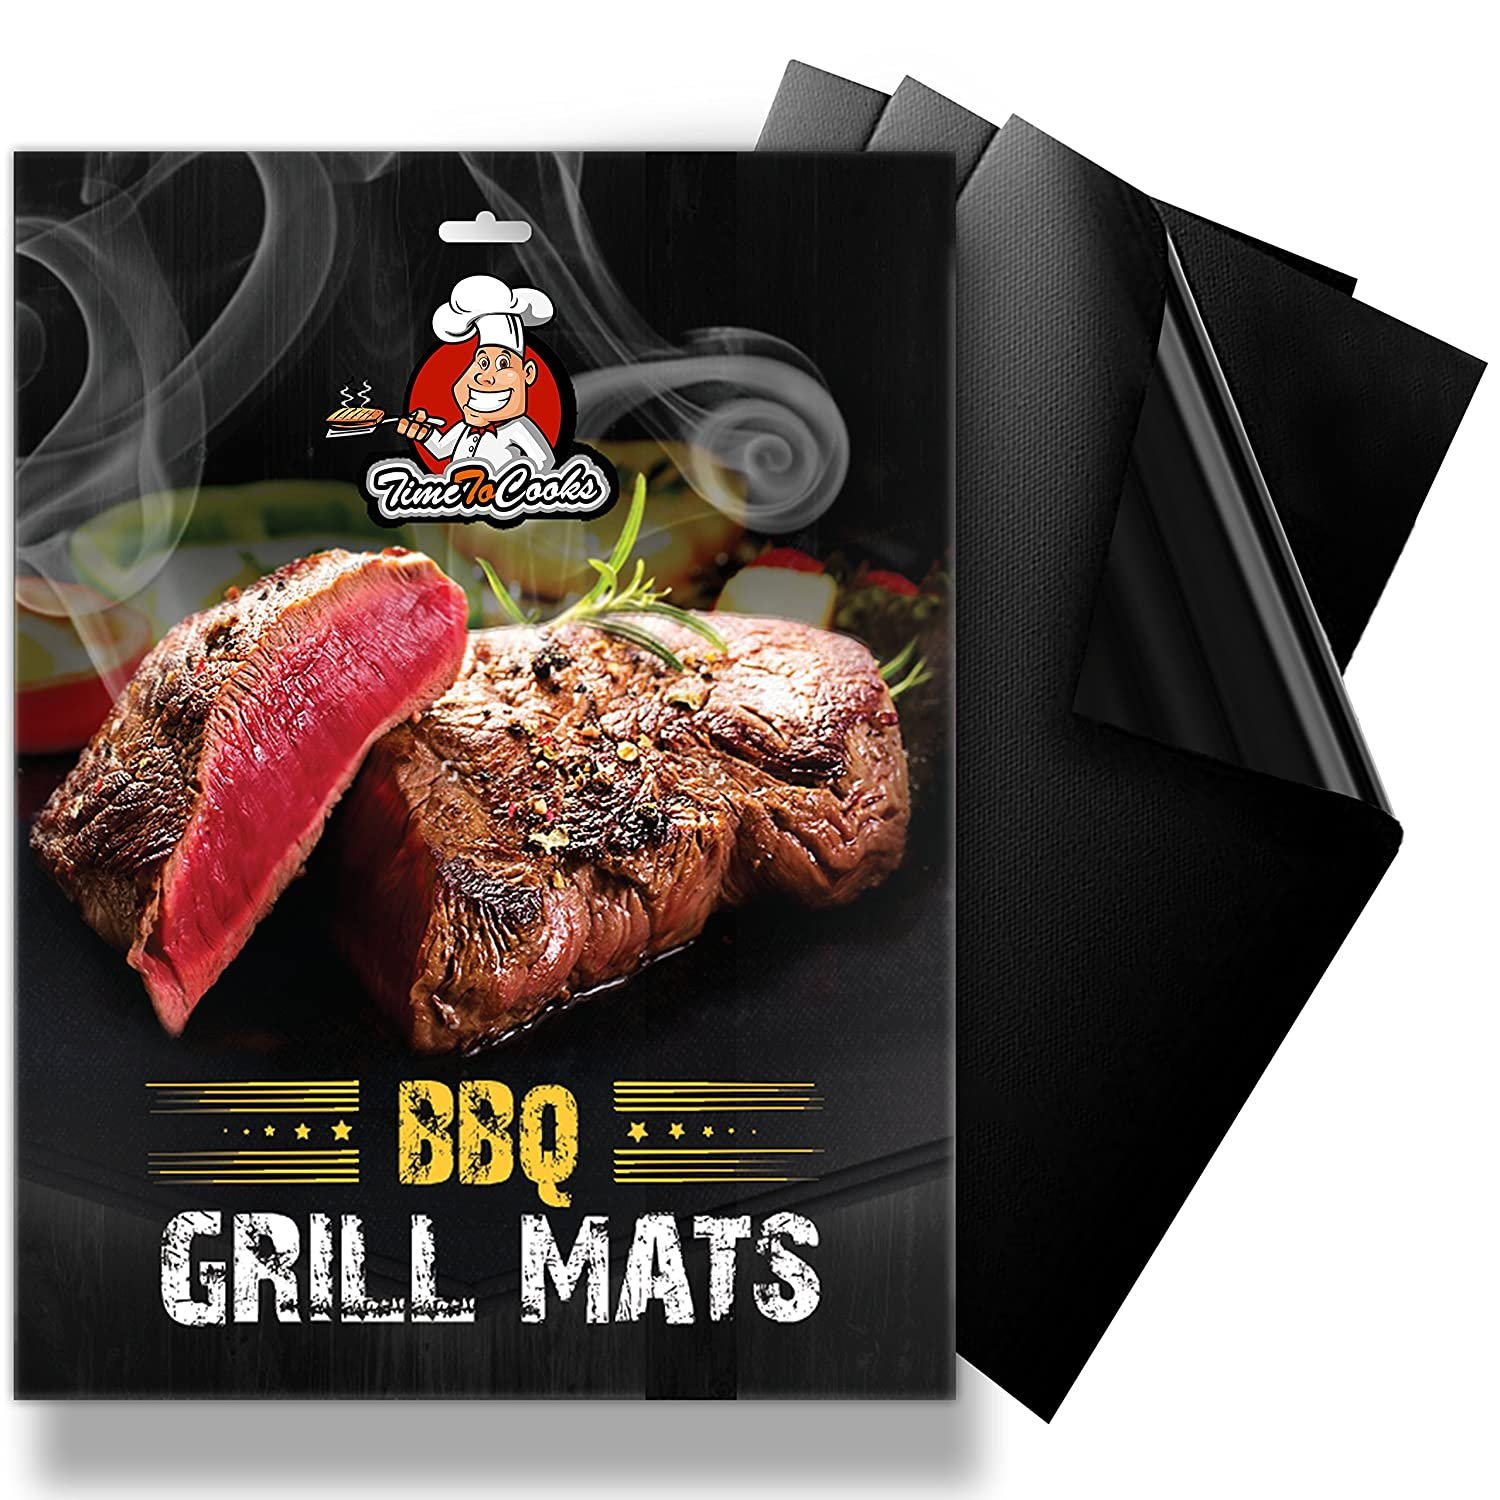 BBQ Grill Mat Set – 3 Black Grilling Mats with non-stick & non-toxic coating - work on charcoal, electric, gas, propane grill